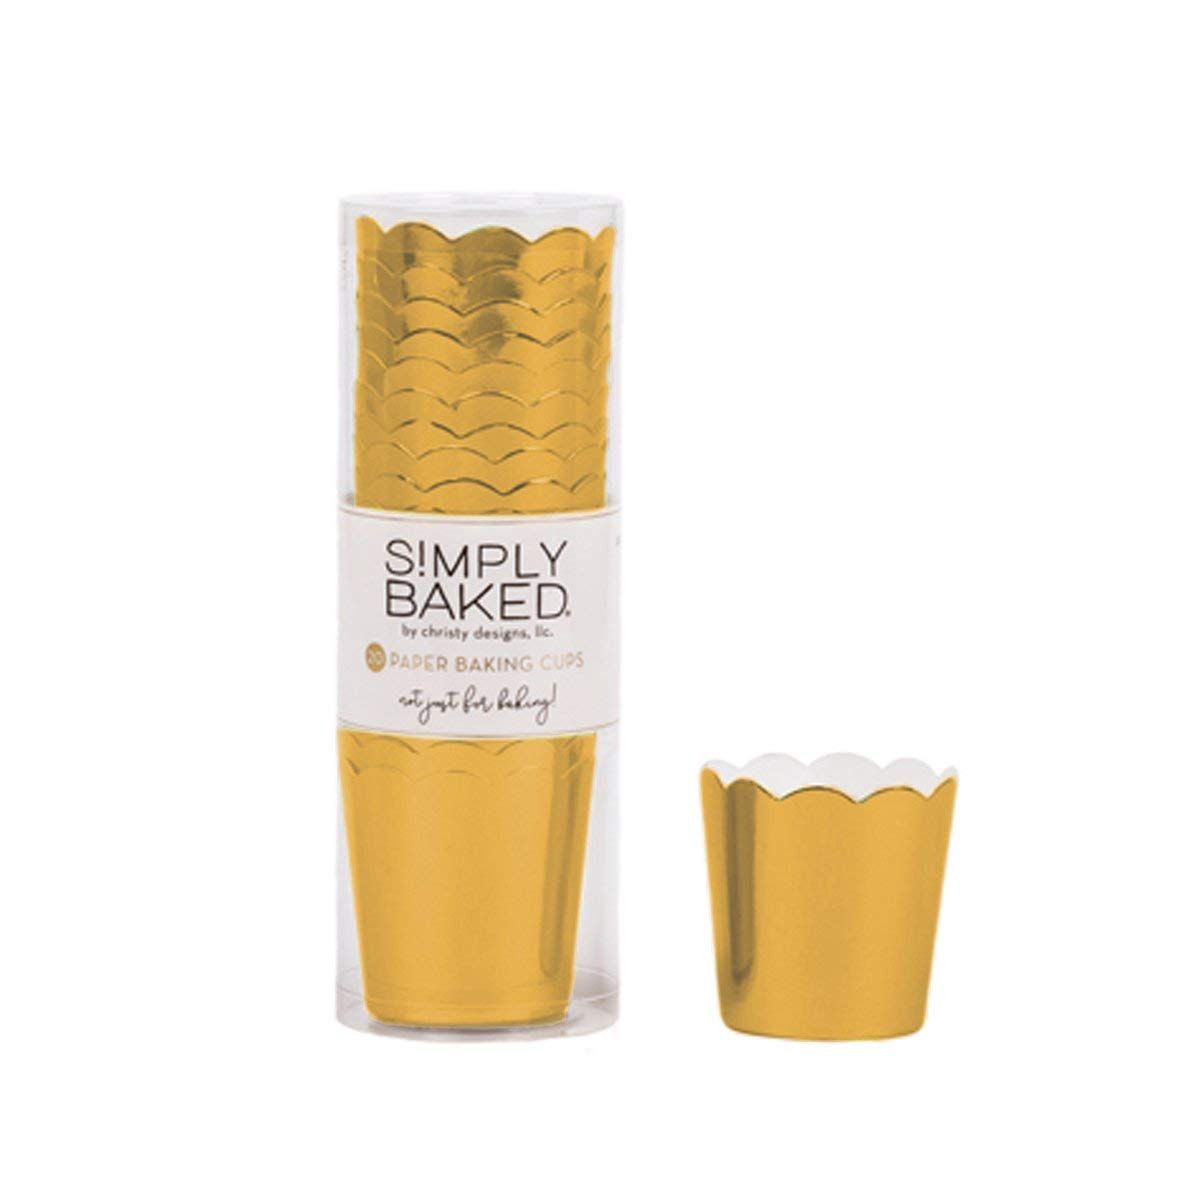 Simply Baked PGC-20C Paper Baking Cup, Petite, Gold Metallic by Simply Baked (Image #3)